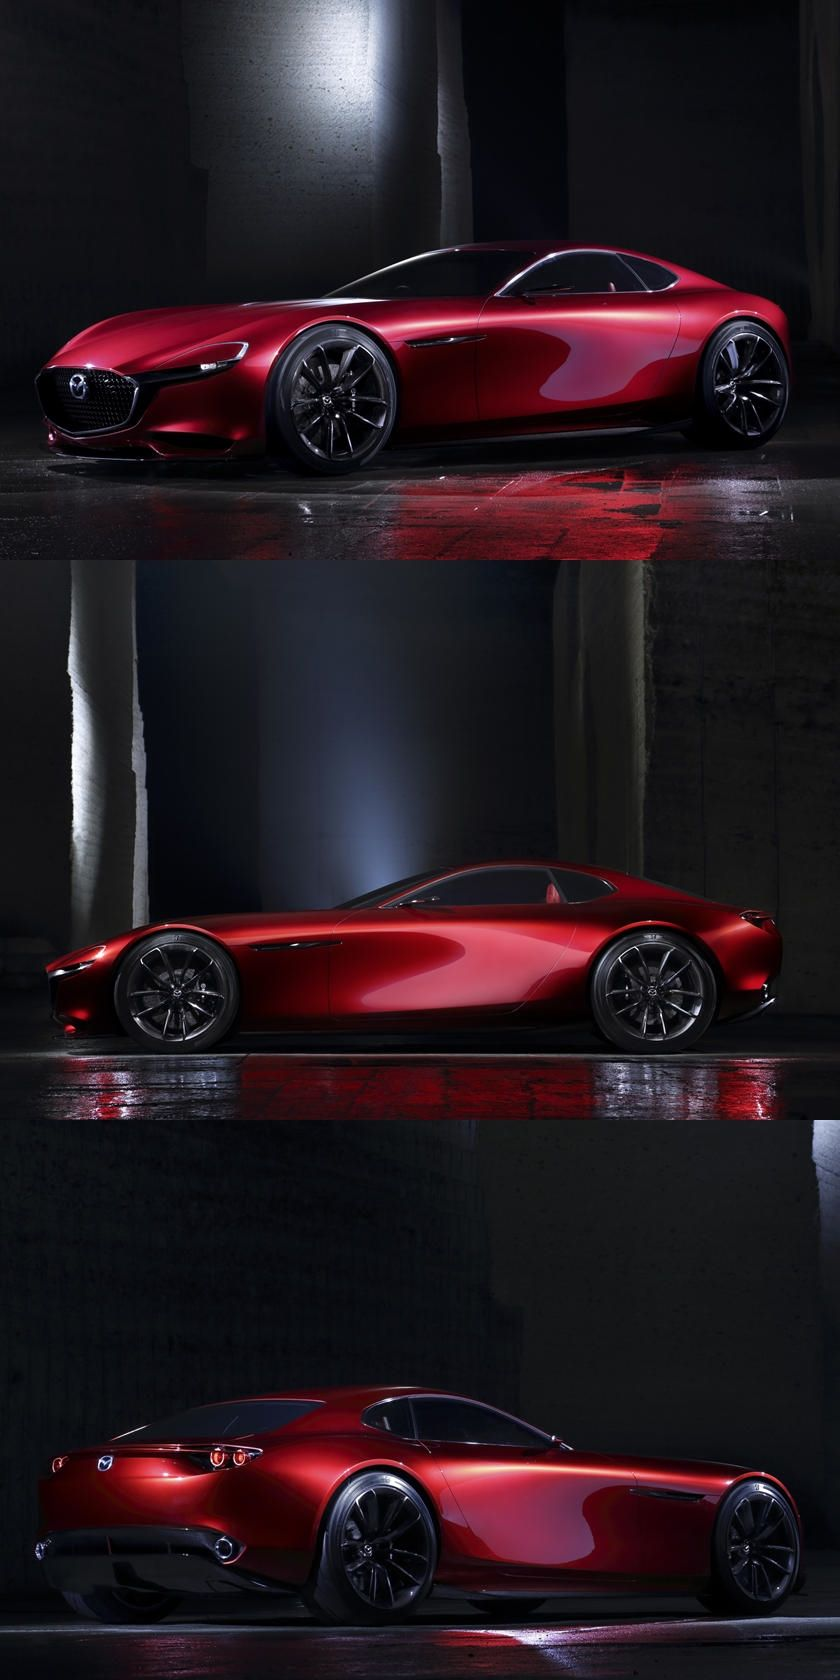 Next Mazda 6 Could Be Radically Different Recently Discovered Patent Apps From Mazda Suggest An I6 Engine And 8 Speed Auto Are I In 2020 Mazda 6 Mazda Futuristic Cars